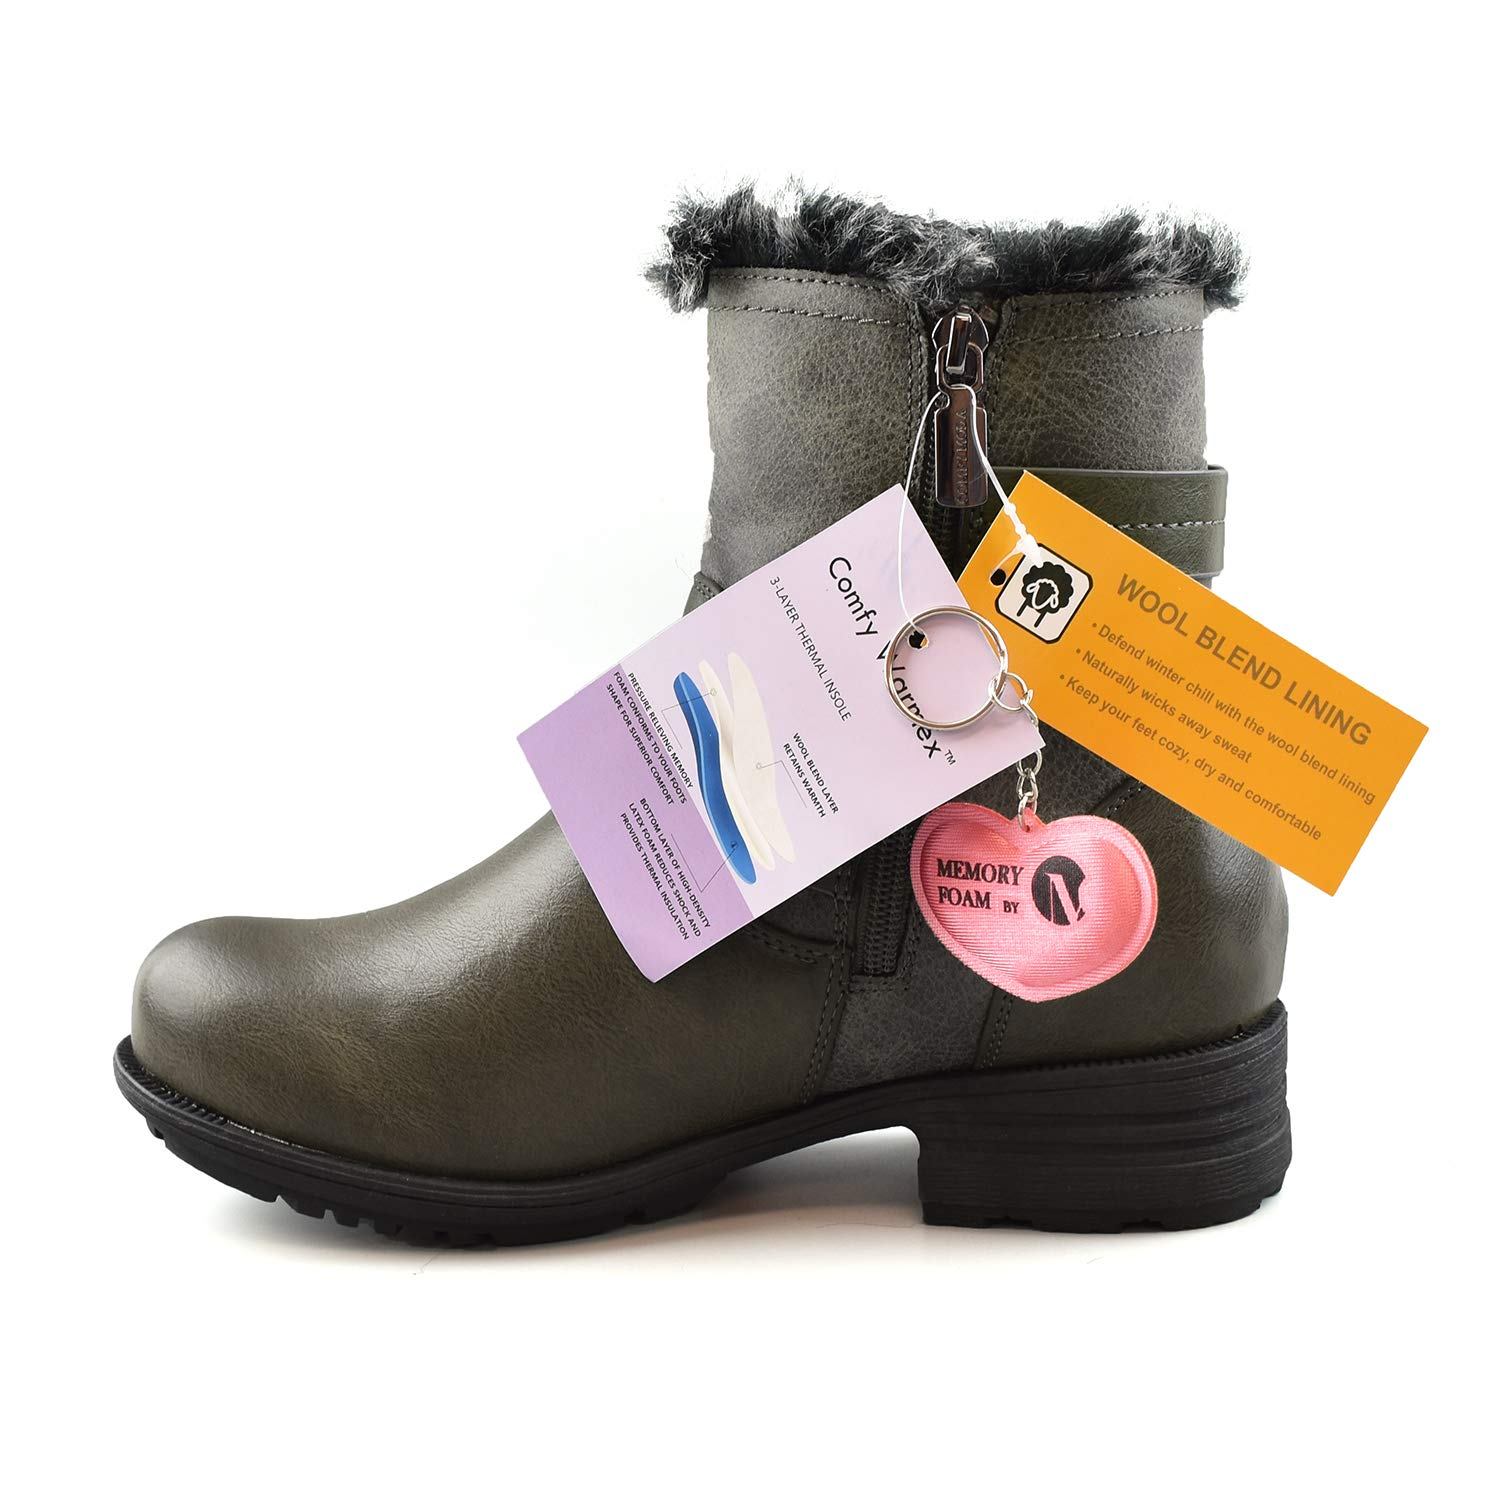 1930bd9a7542 Comfy Moda Womens Winter Boots 3M™ Thinsulate™ Memory Foam Super Warm Comfy  Wide Fitting